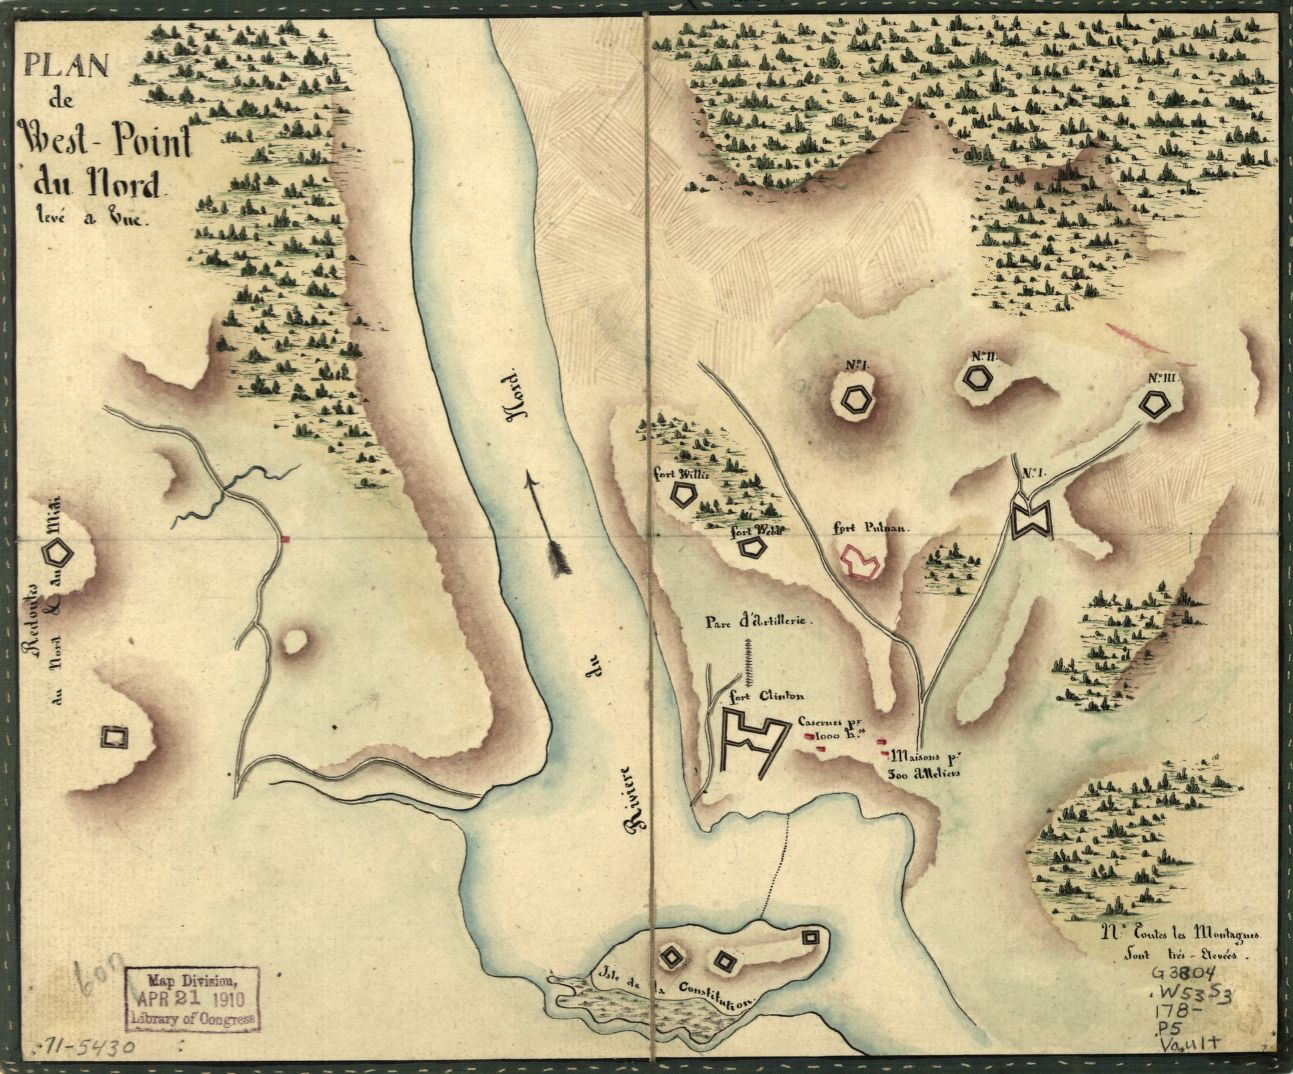 "Despite often being referred to as ""Fortress West Point,"" the military post actually consisted of a number of small forts and redoubts advantageously posted around a strategic bend in the Hudson River. - Plan de West-Point du nord, levé a vue, [1780]. Courtesy Library of Congress [G3804.W53S3 178- .P5]"